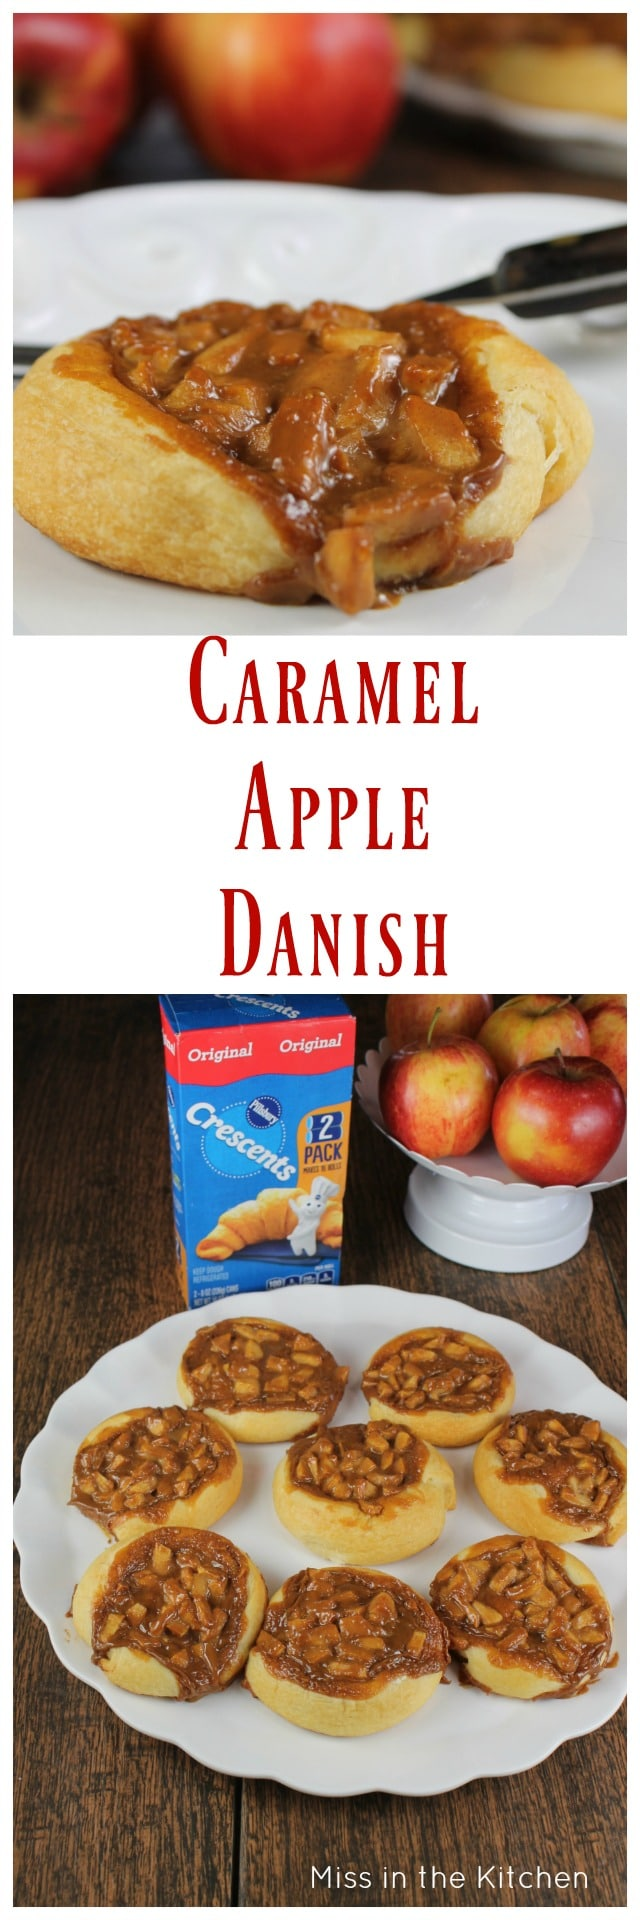 Caramel Apple Danish Recipe perfect for the holidays or anytime treat the whole family will love. MissintheKitchen.com #ad